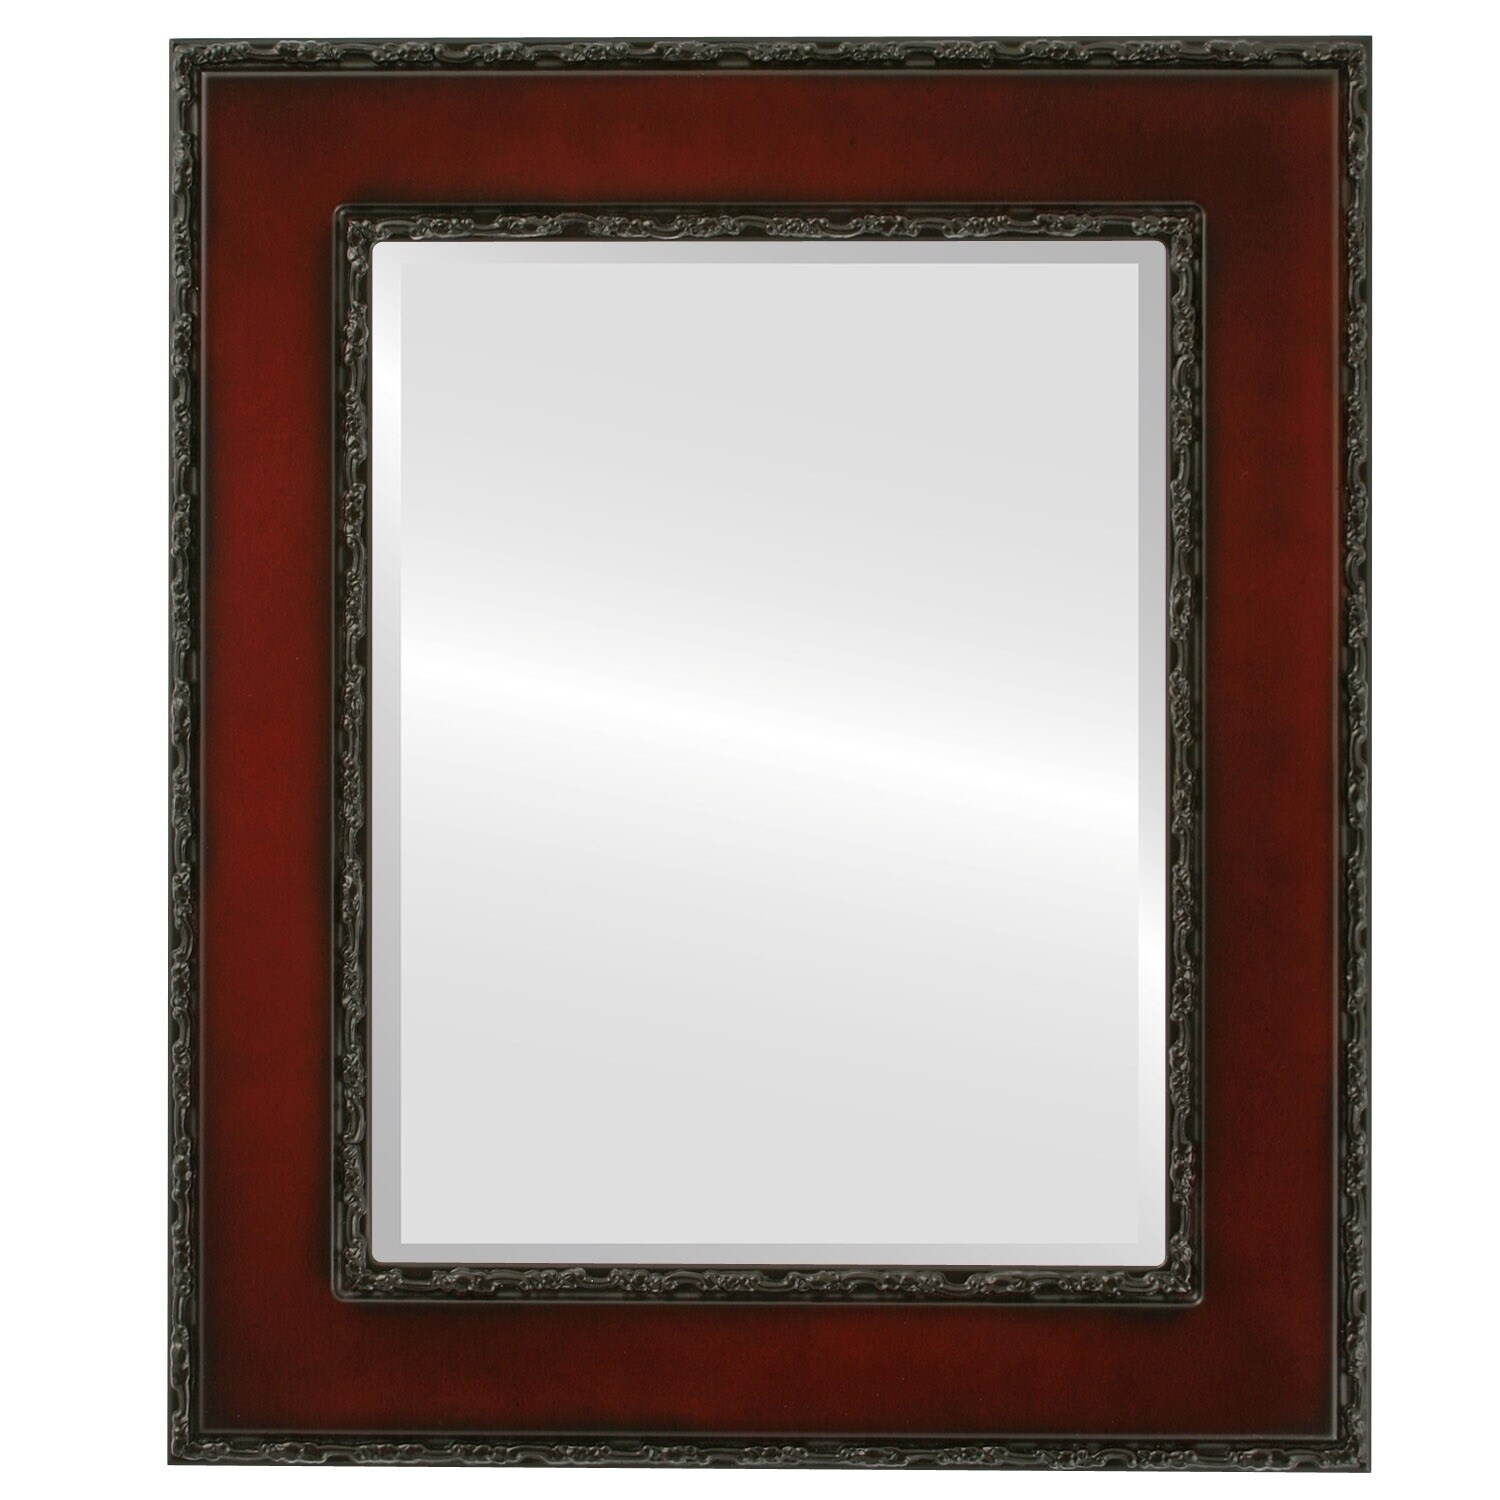 Paris Framed Round Mirror in Rosewood - Red (Medium (15-32 high) - 17x21)